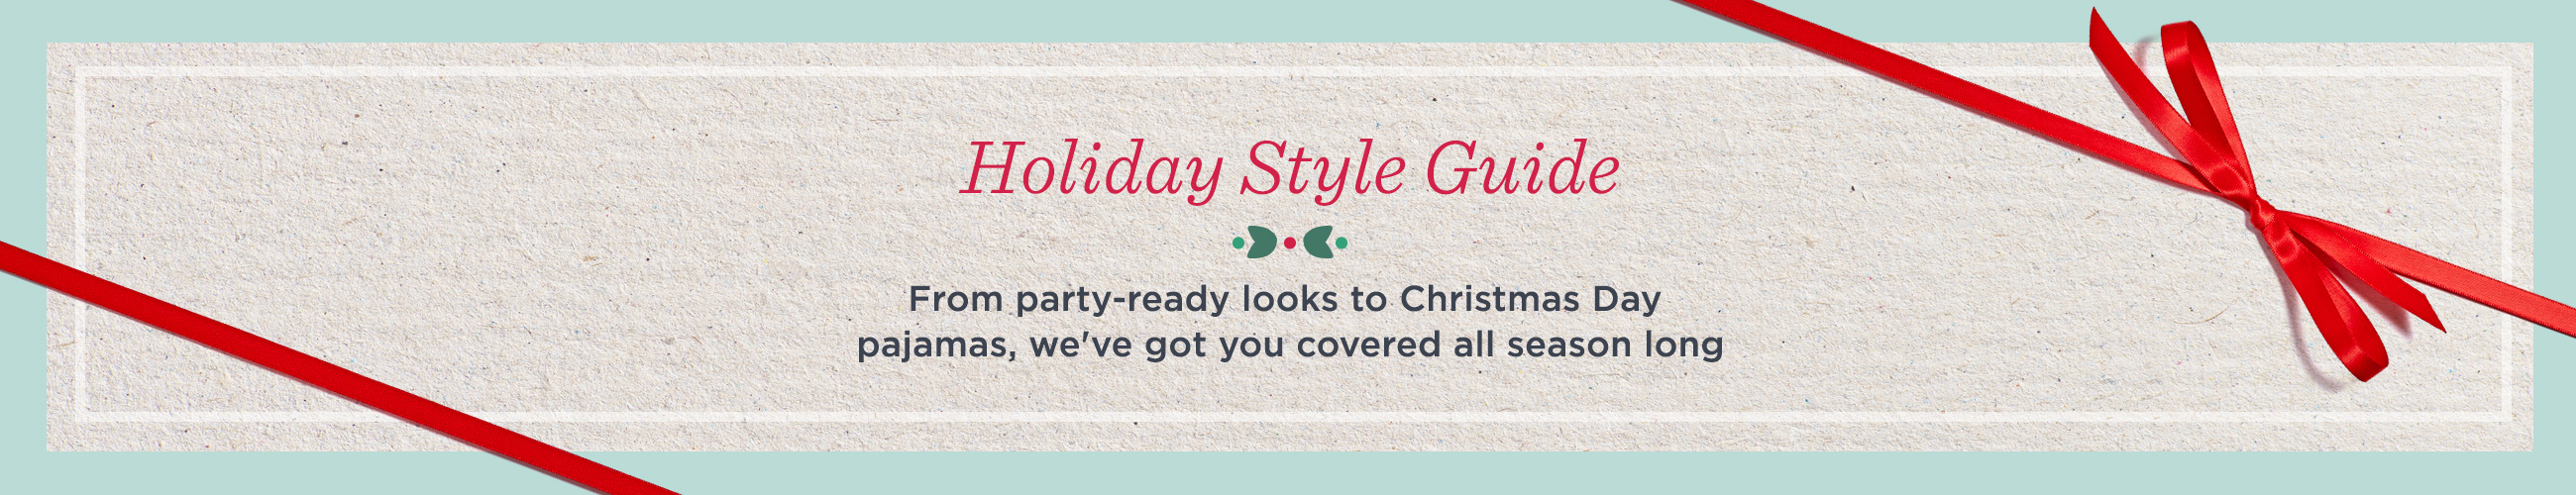 Holiday Style Guide - From party-ready looks to Christmas Day pajamas, we've got you covered all season long